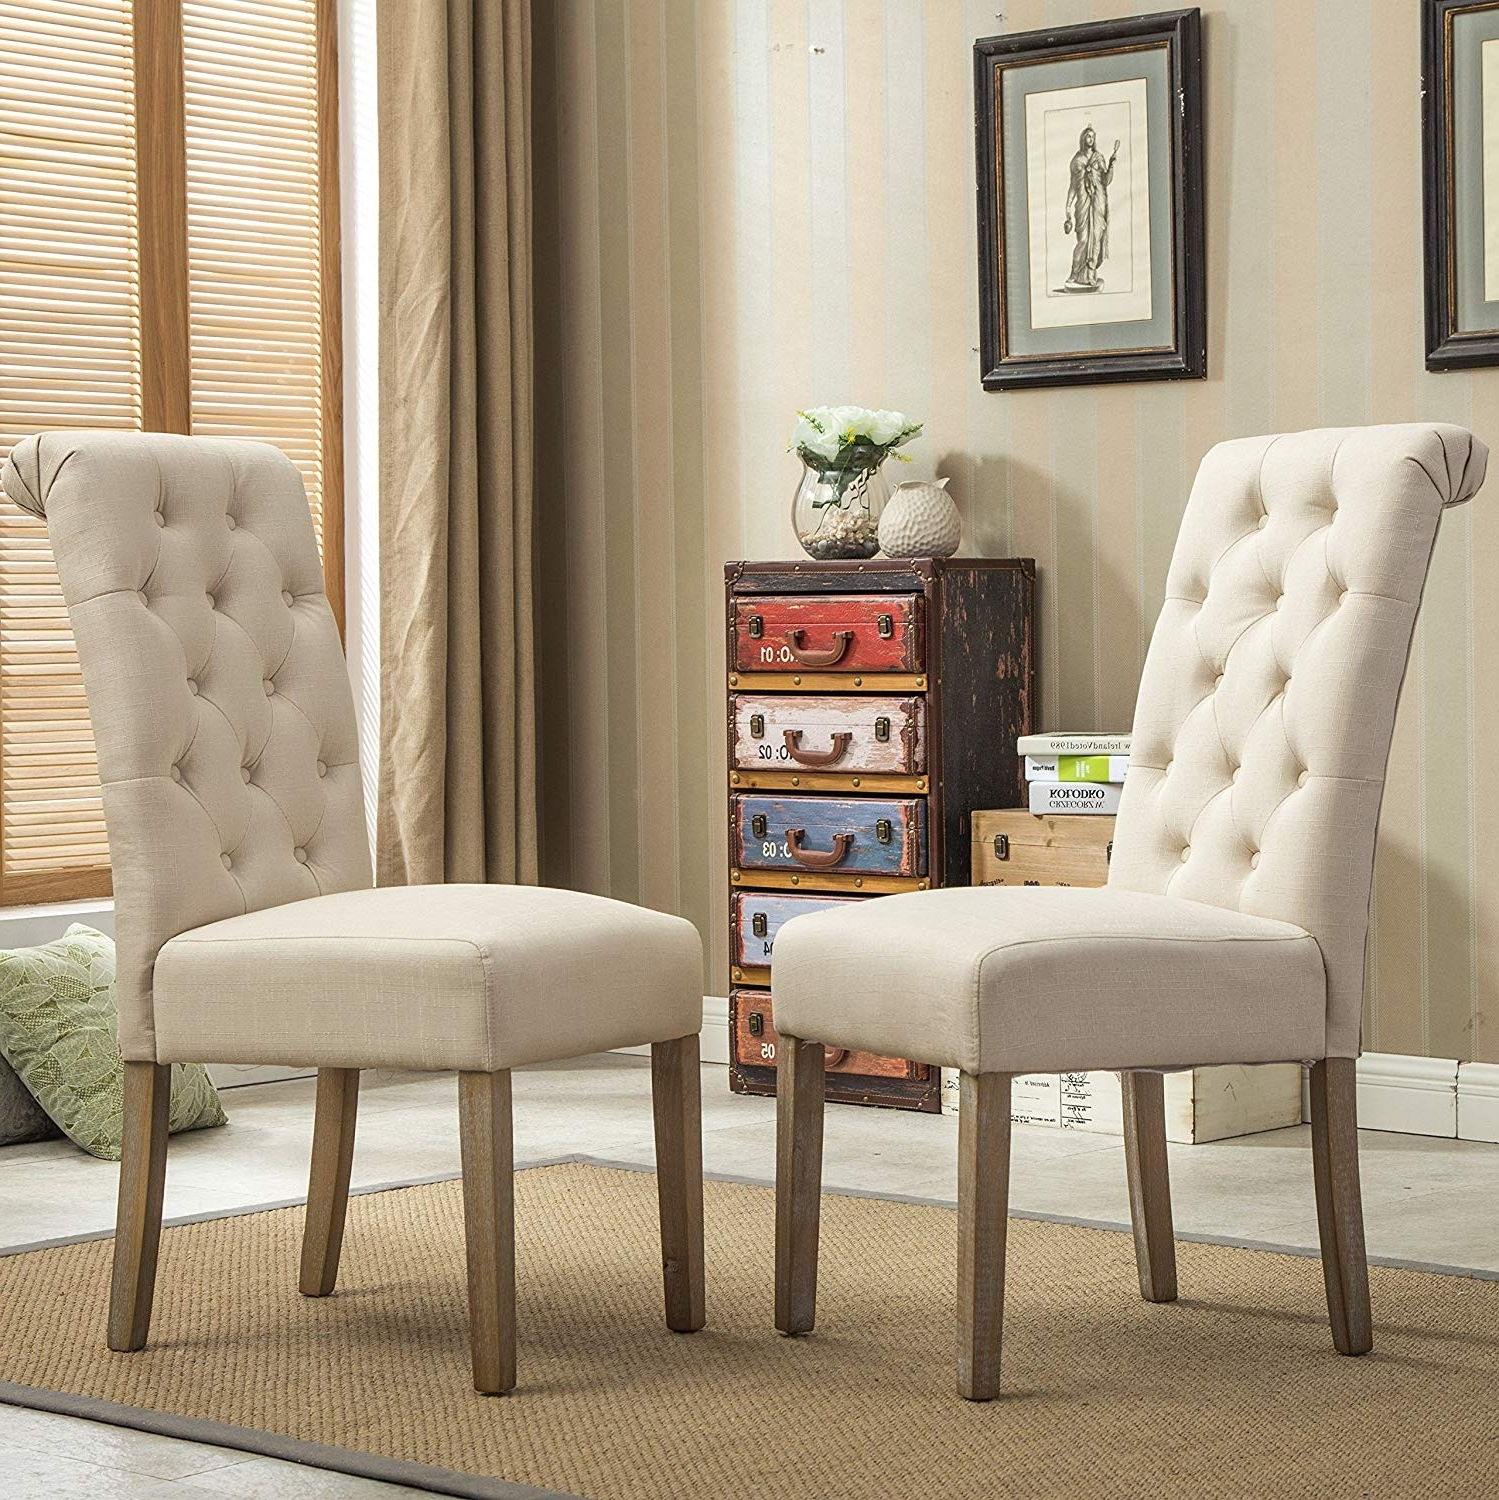 Dining Chairs with regard to Recent Amazon - Roundhill Furniture Habit Solid Wood Tufted Parsons